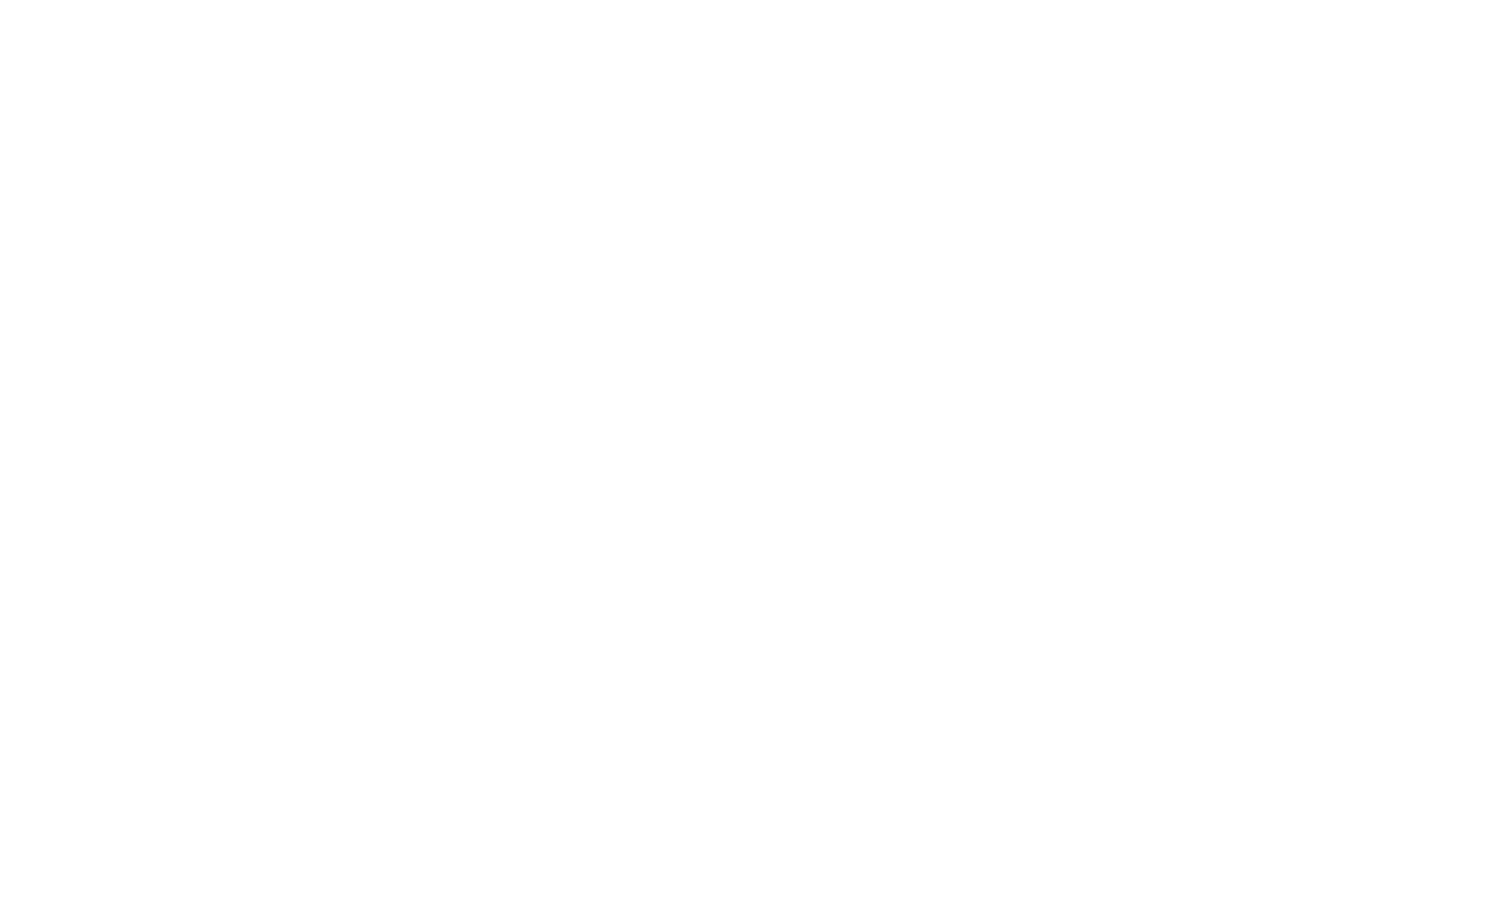 The Moorings Presbyterian Preschool Naples